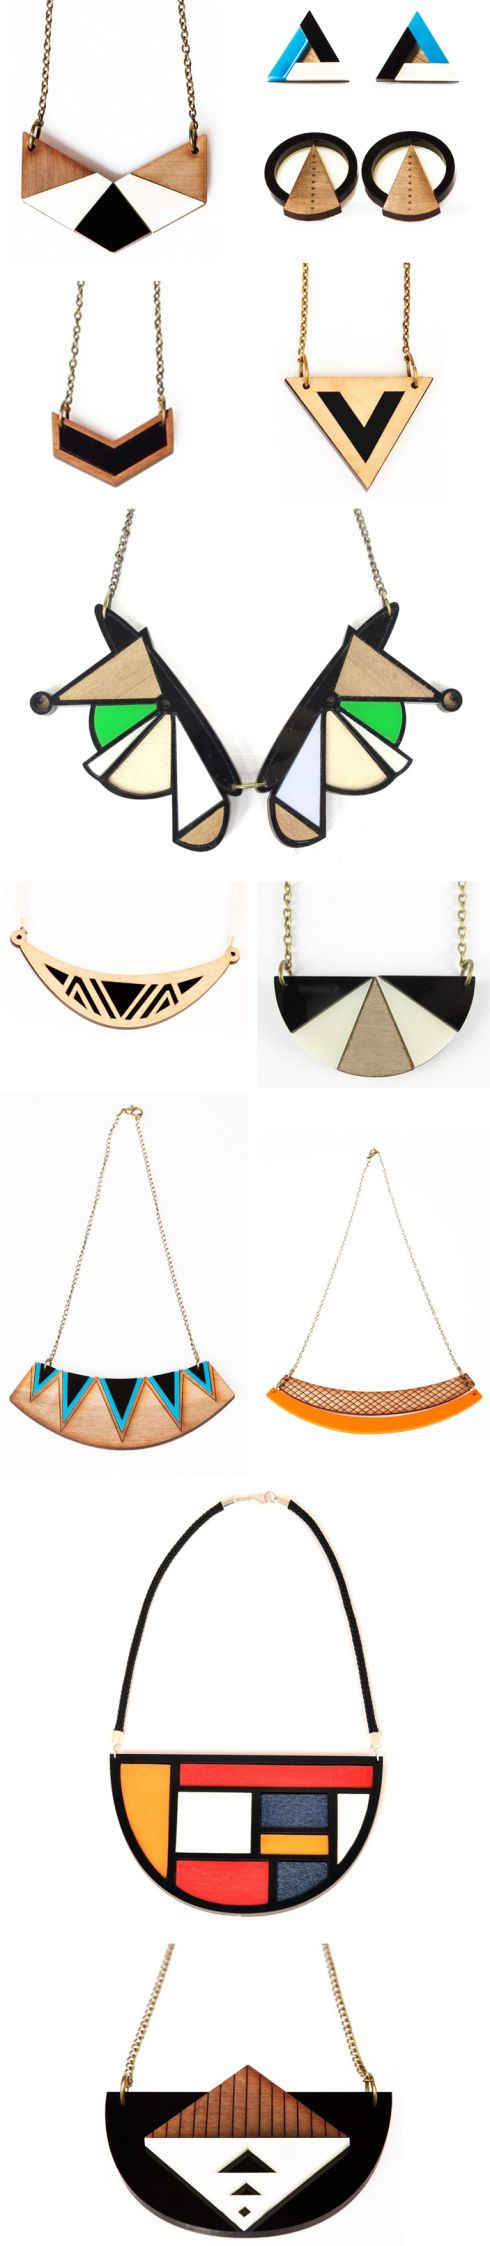 Geometric patterns, bygone eras & Art Deco glamour all inspire this GORGEOUS jewellery collection by Nylon Sky: http://morningedit.com/2013/05/08/nylon-sky/